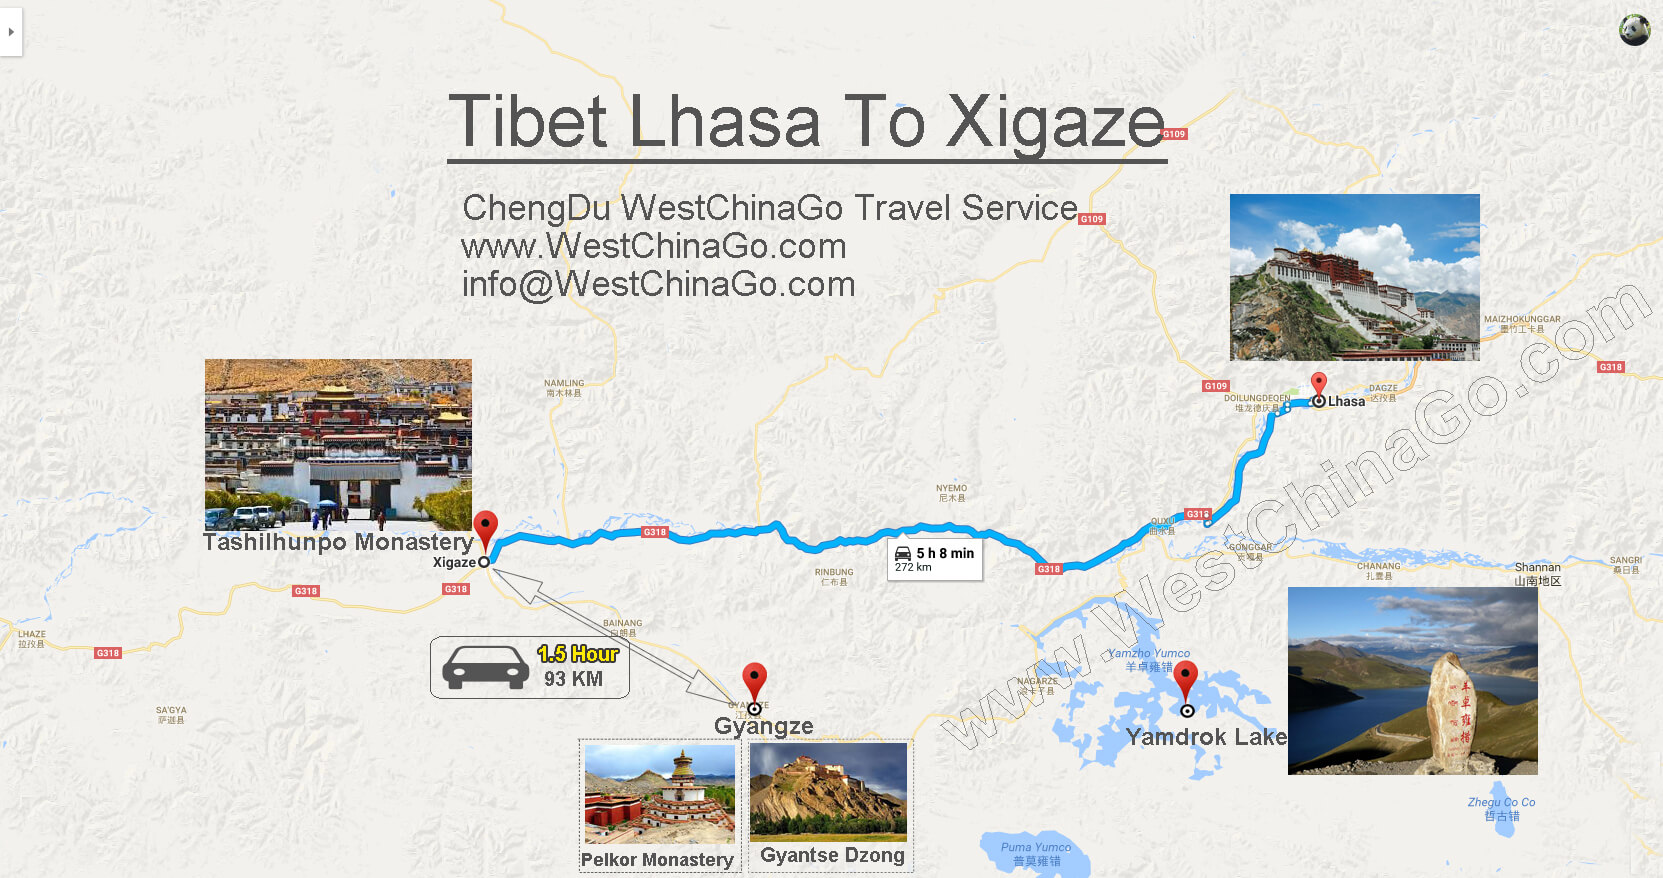 chengdu China to Lhasa Tibet China  tour map